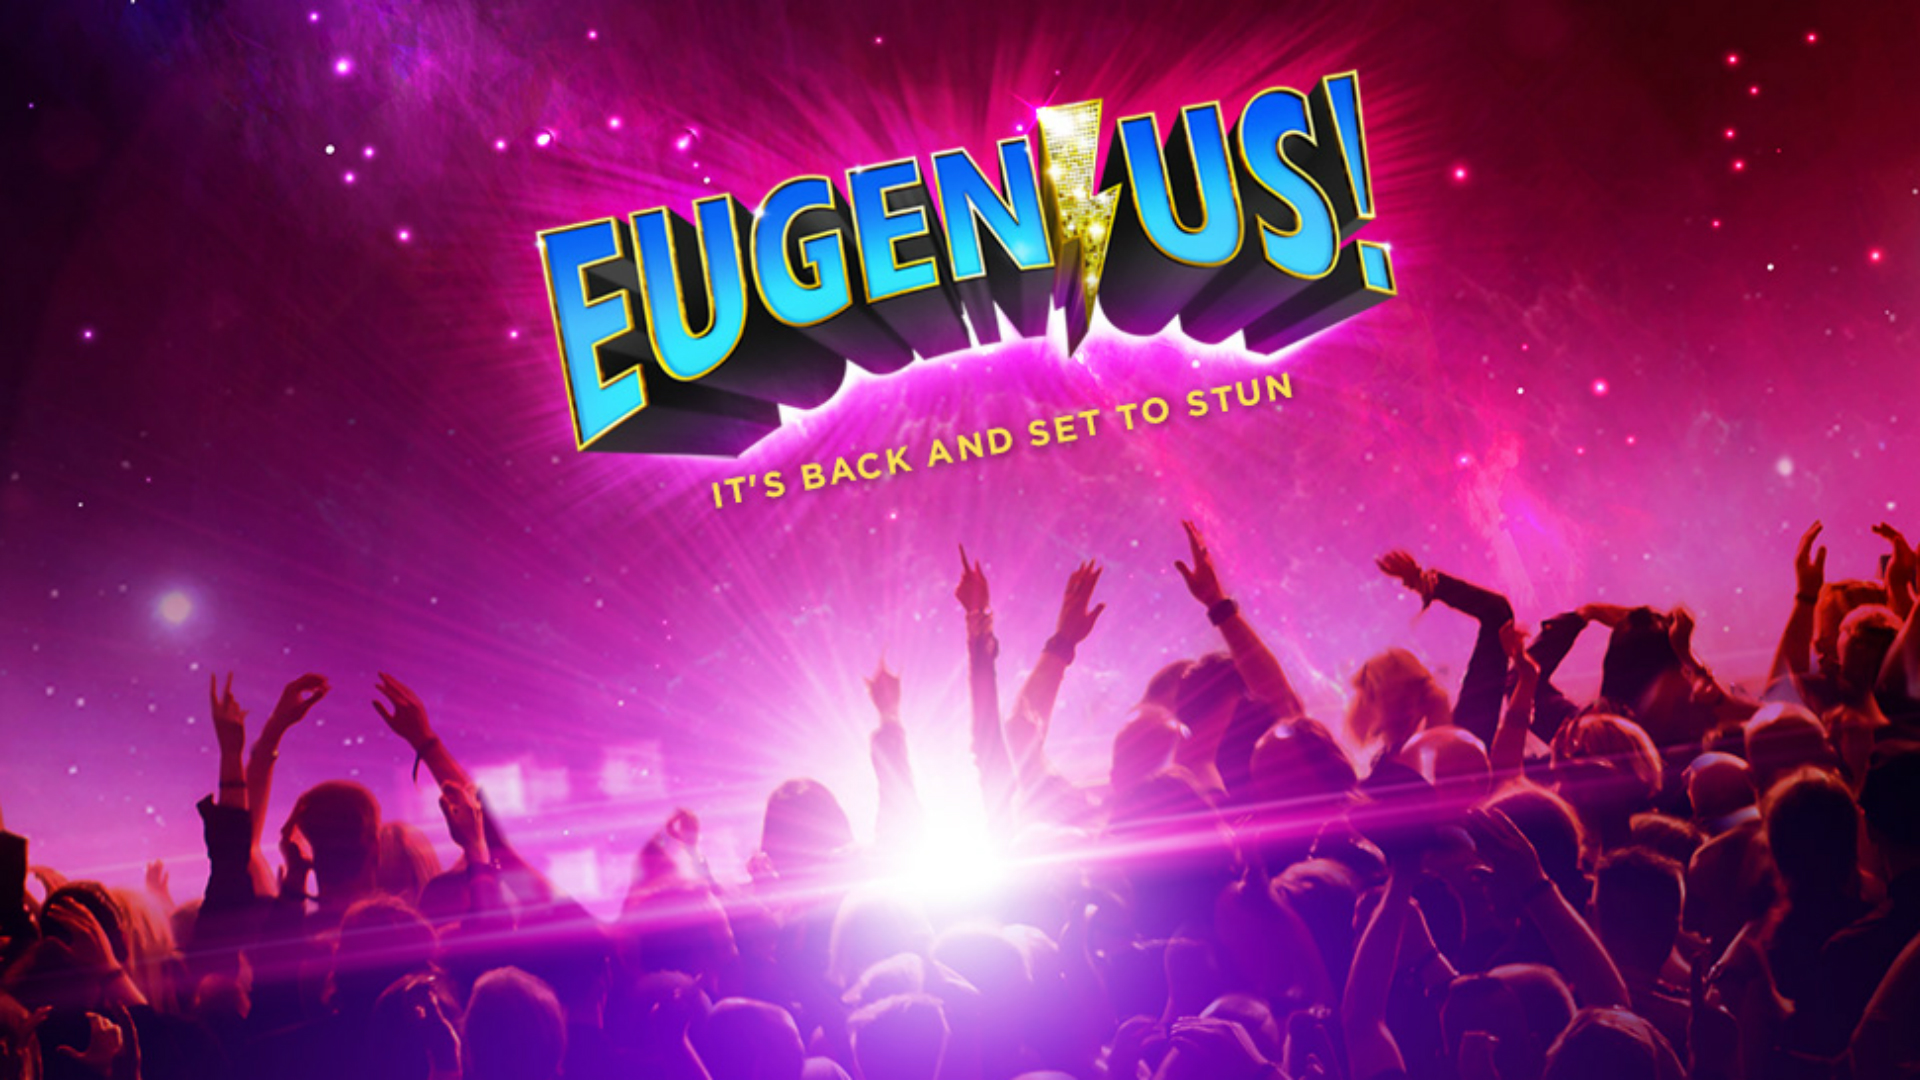 Eugenius! logo above a crowd of fans